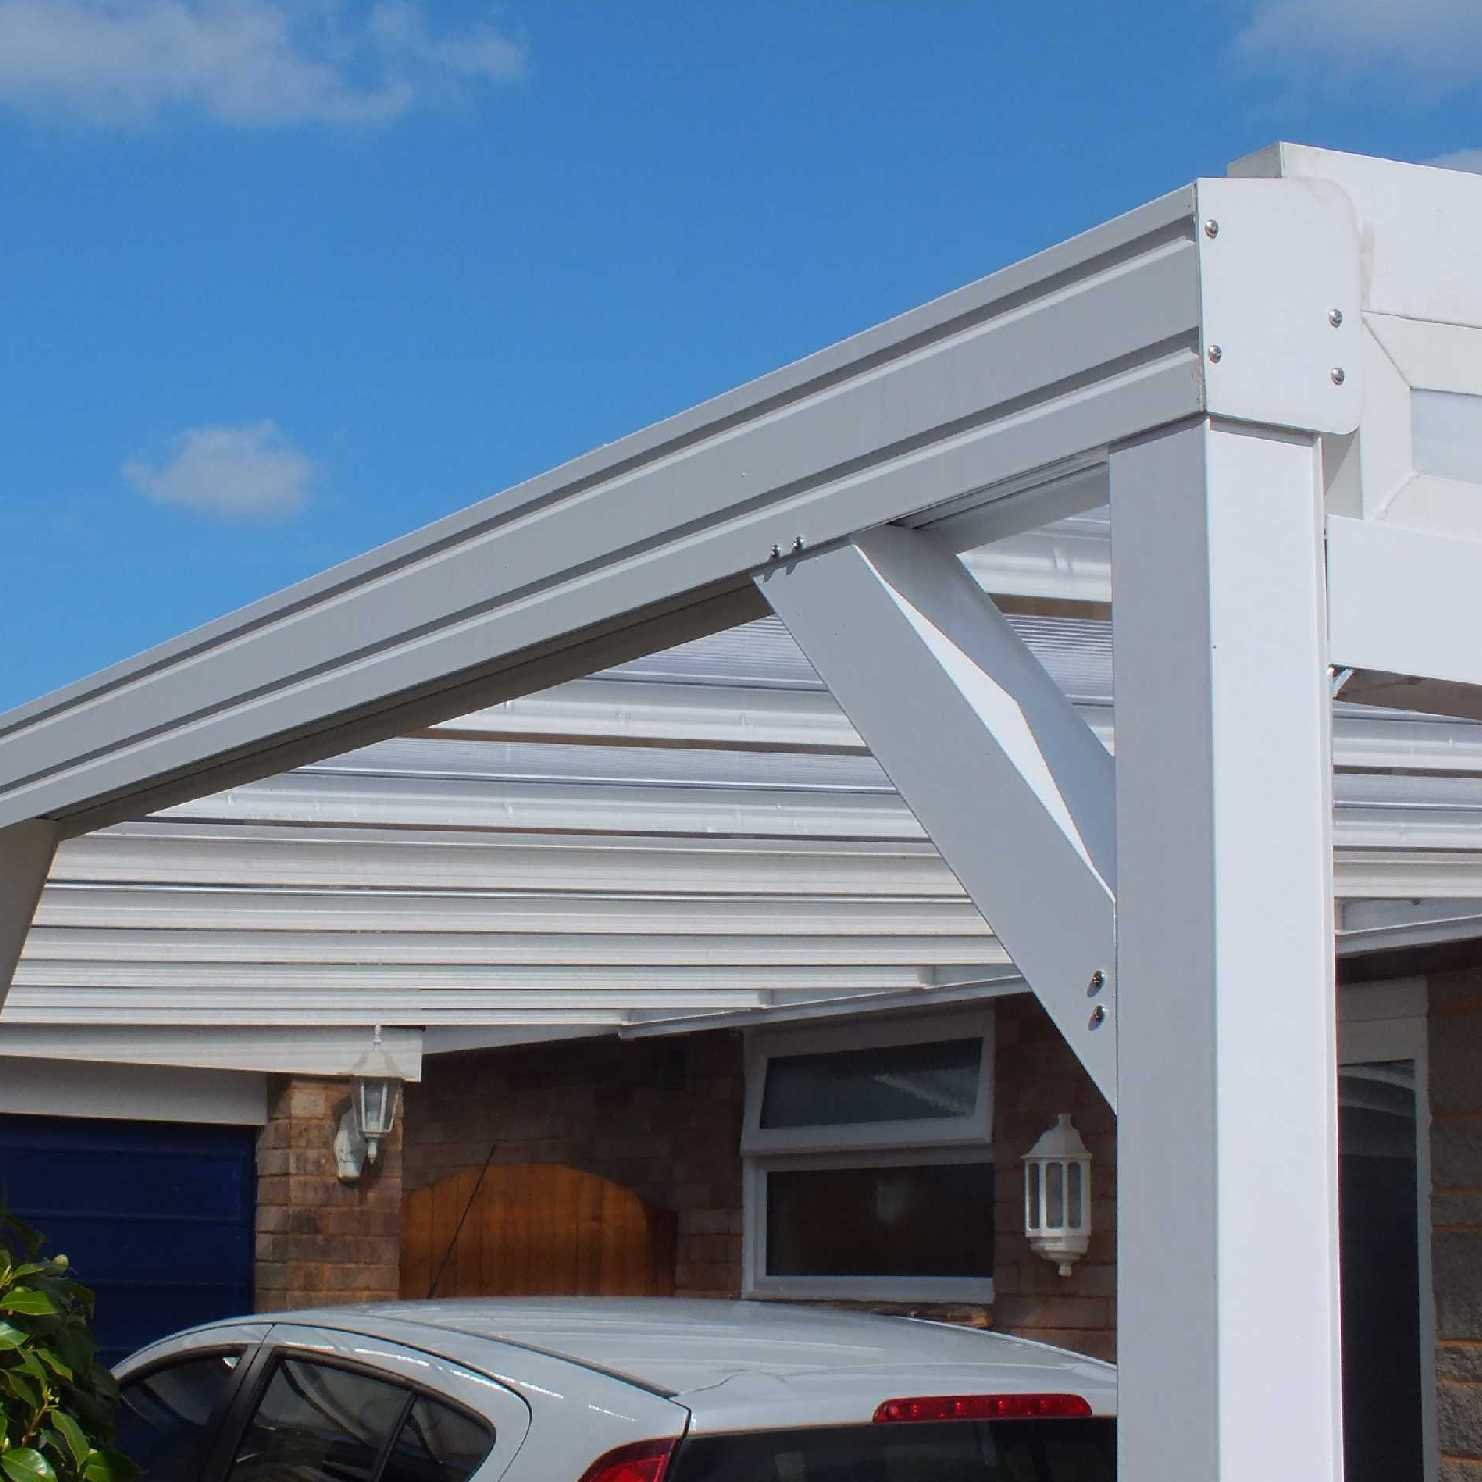 Buy Omega Smart White Lean-To Canopy with 16mm Polycarbonate Glazing - 4.2m (W) x 2.5m (P), (3) Supporting Posts online today